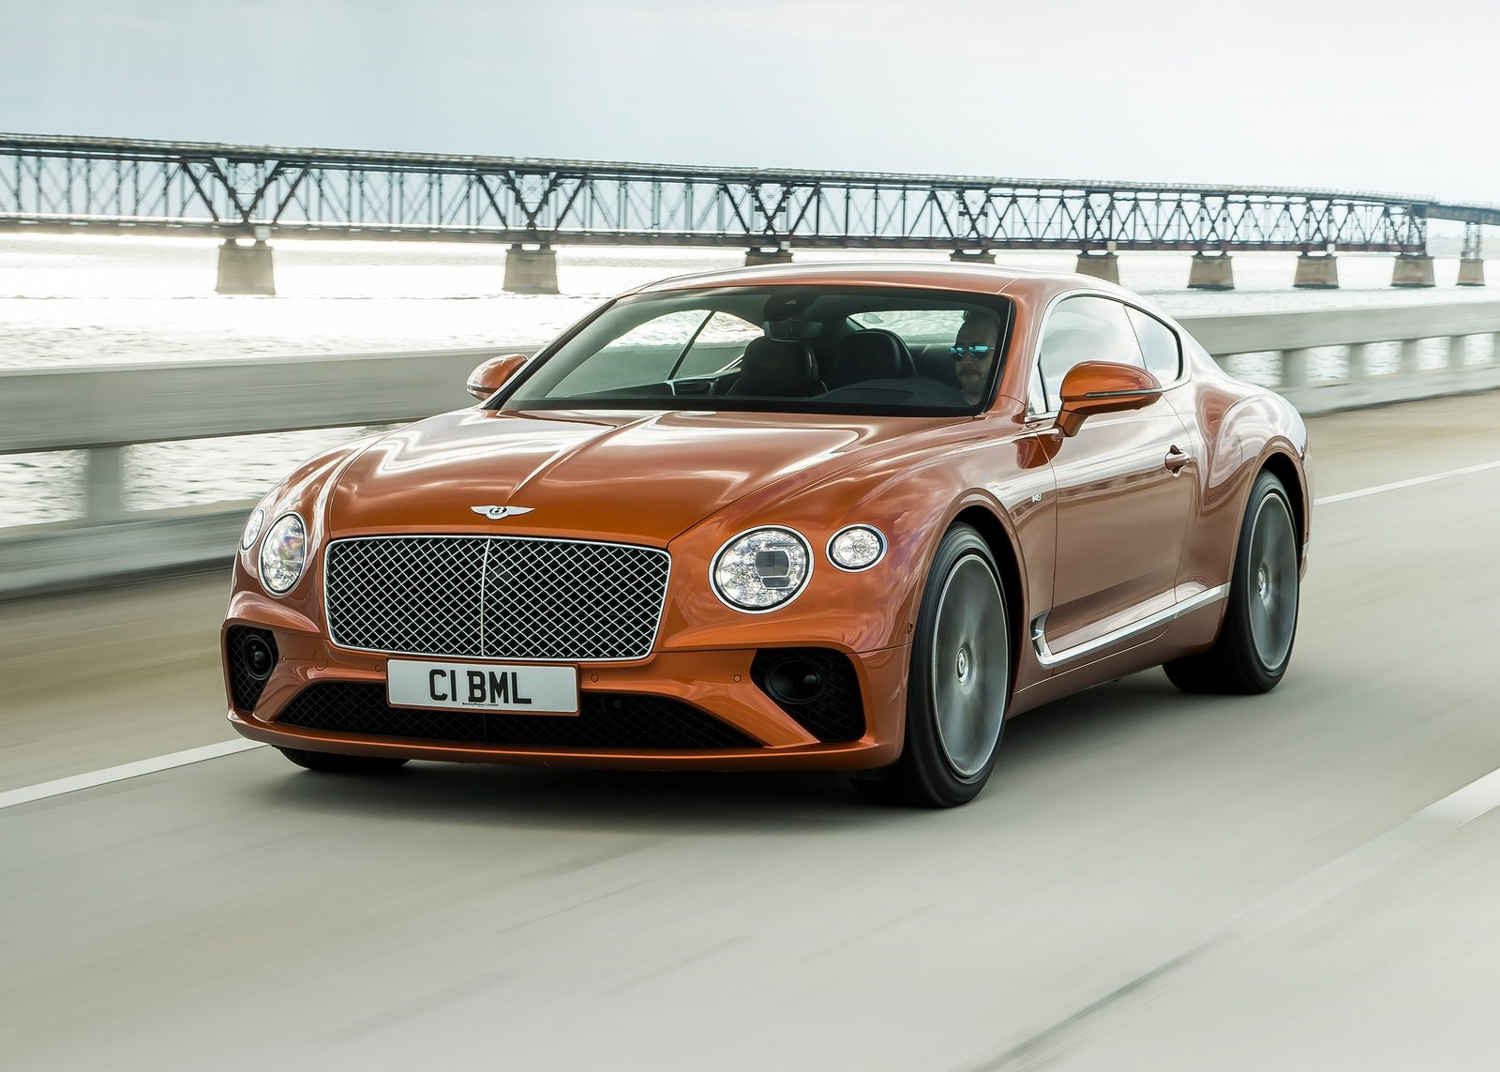 2020 Bentley Continental GT V8 3/4 front orange coupe